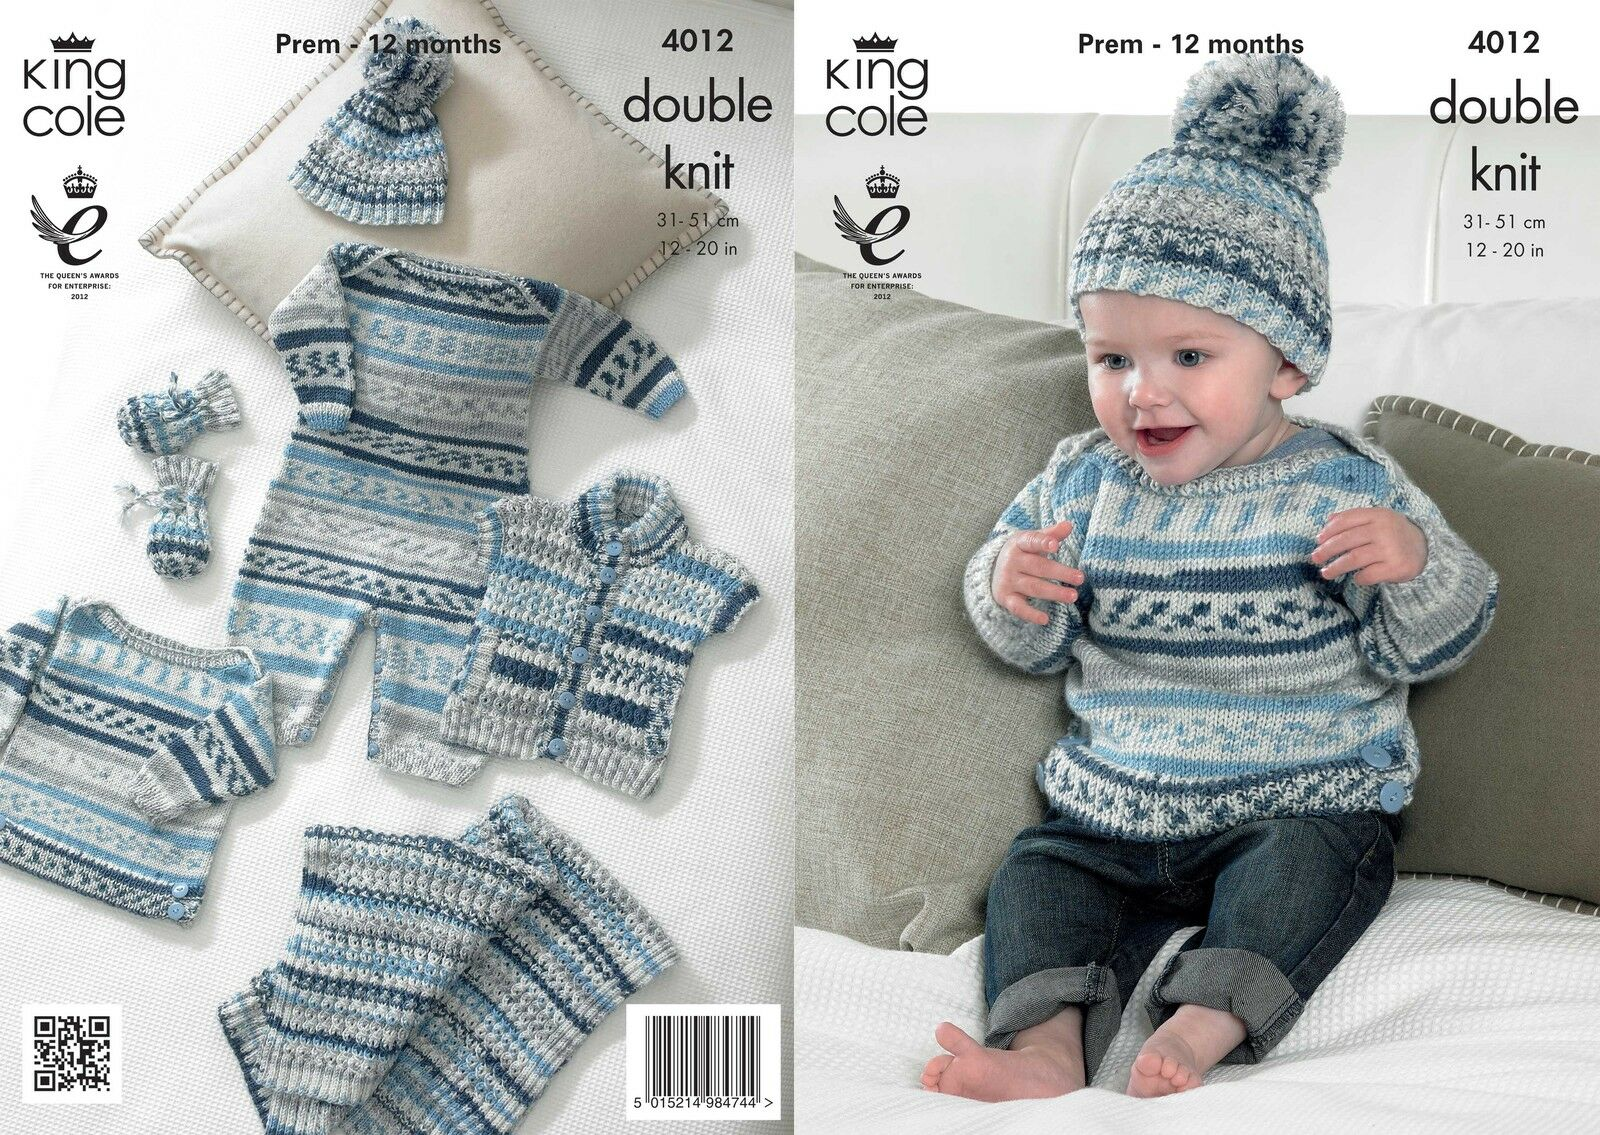 King Cole 4012 Knitting Pattern Baby Set in King Cole Cherish DK   ?3.89 - Pi...